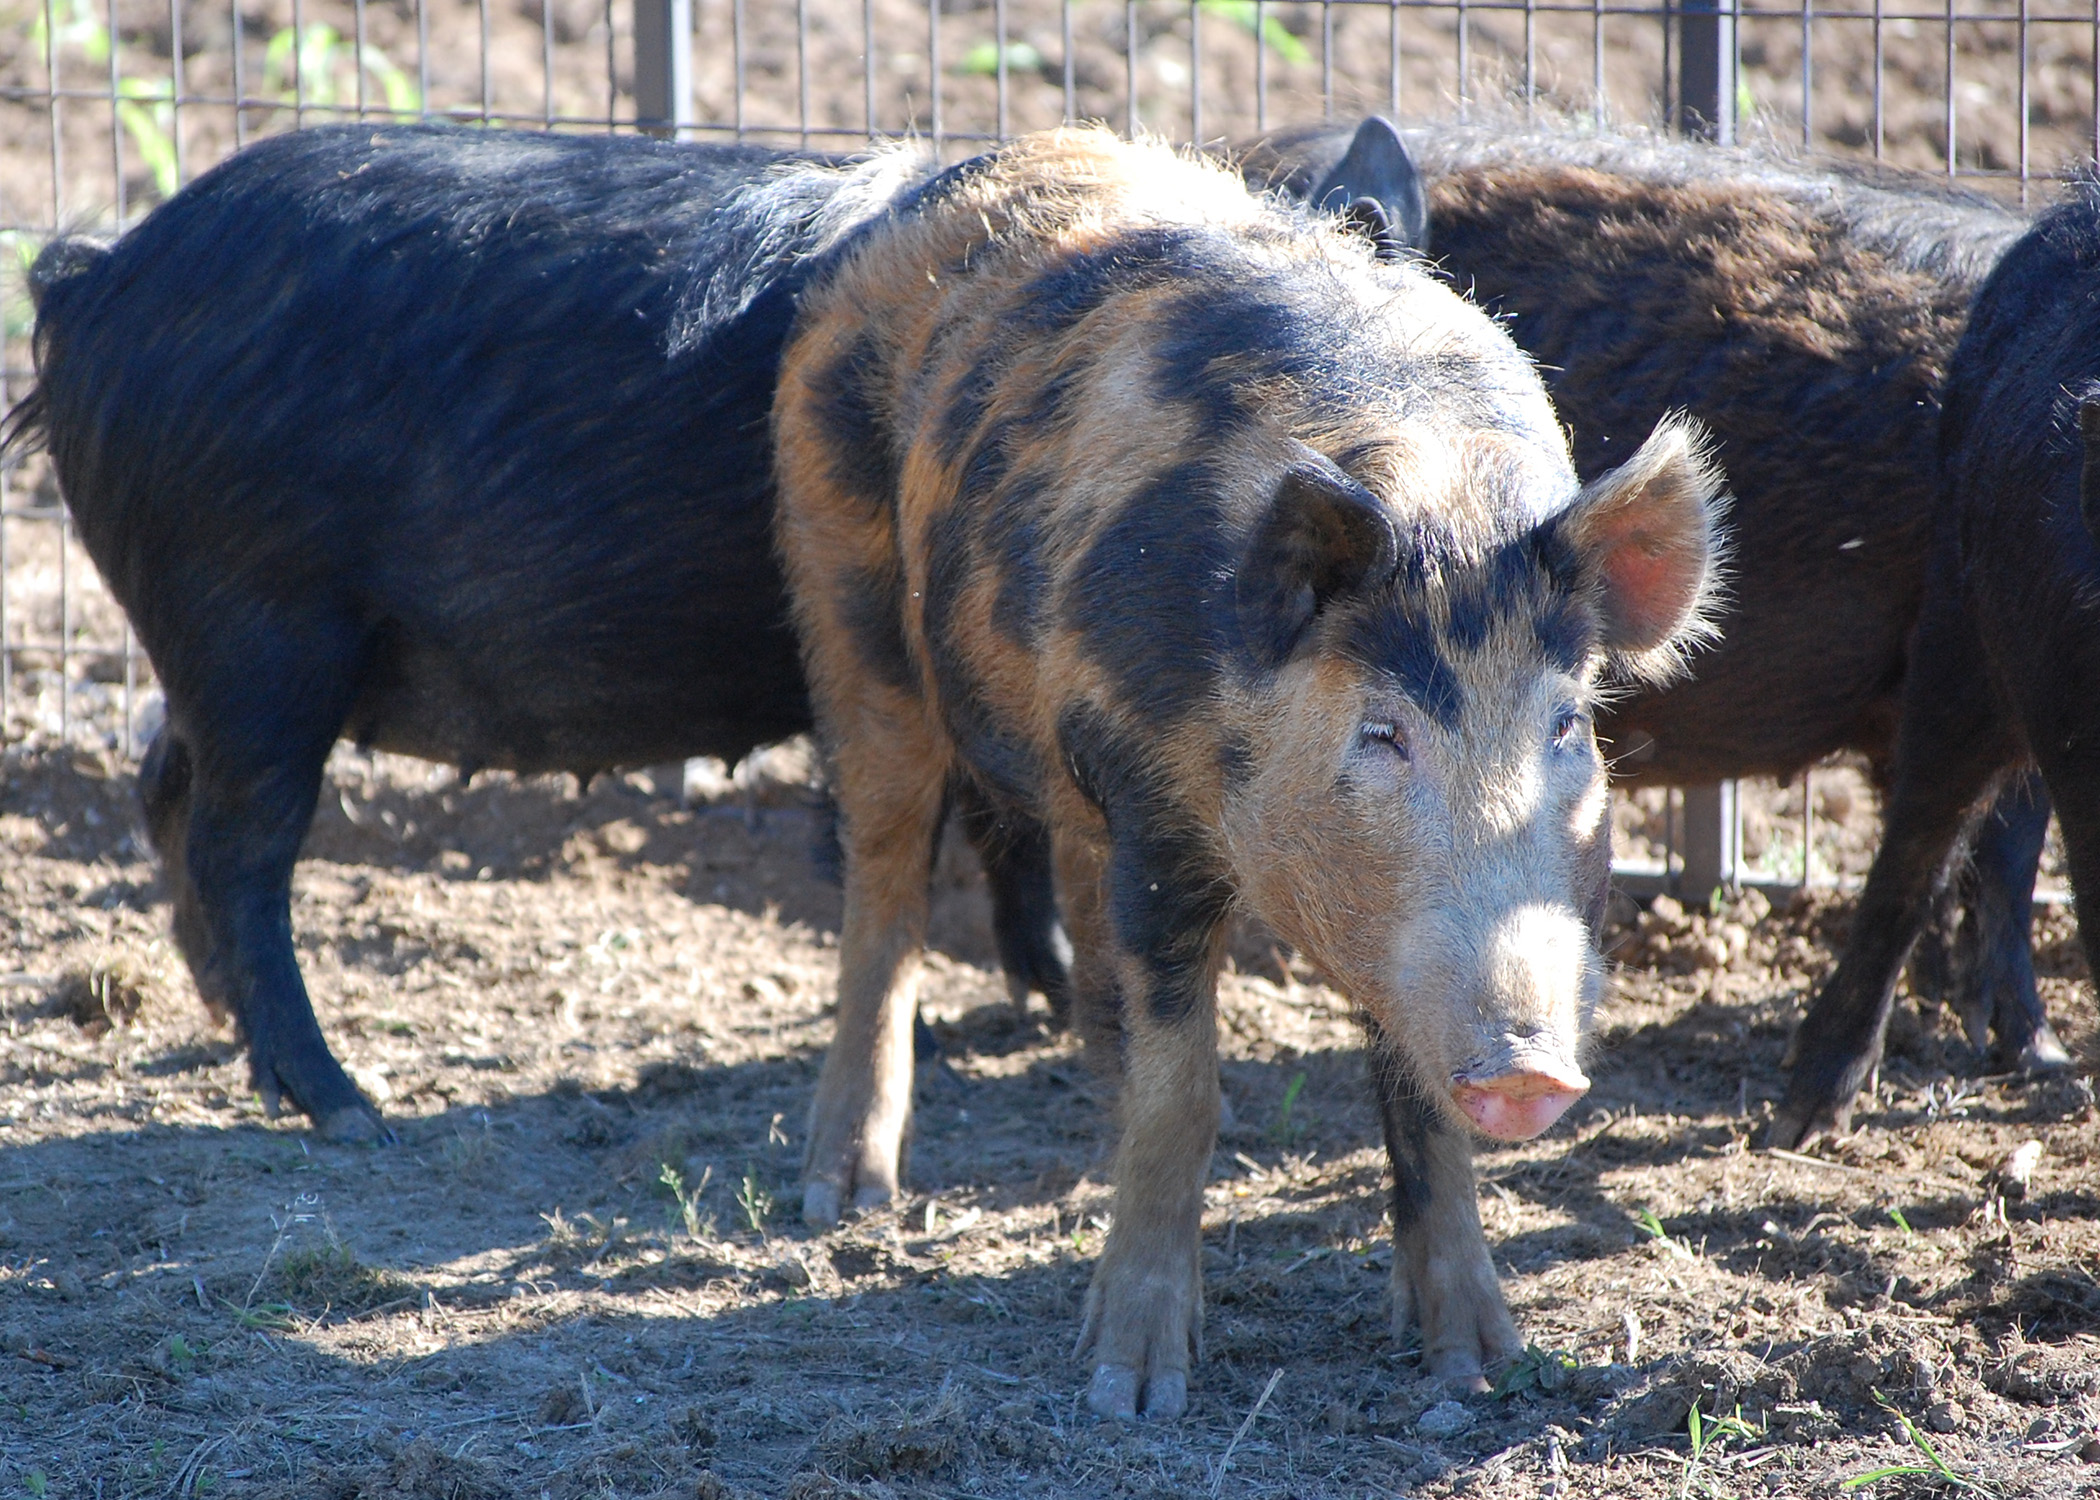 Transporting wild hogs threatens land crops  Mississippi State University Extension Service